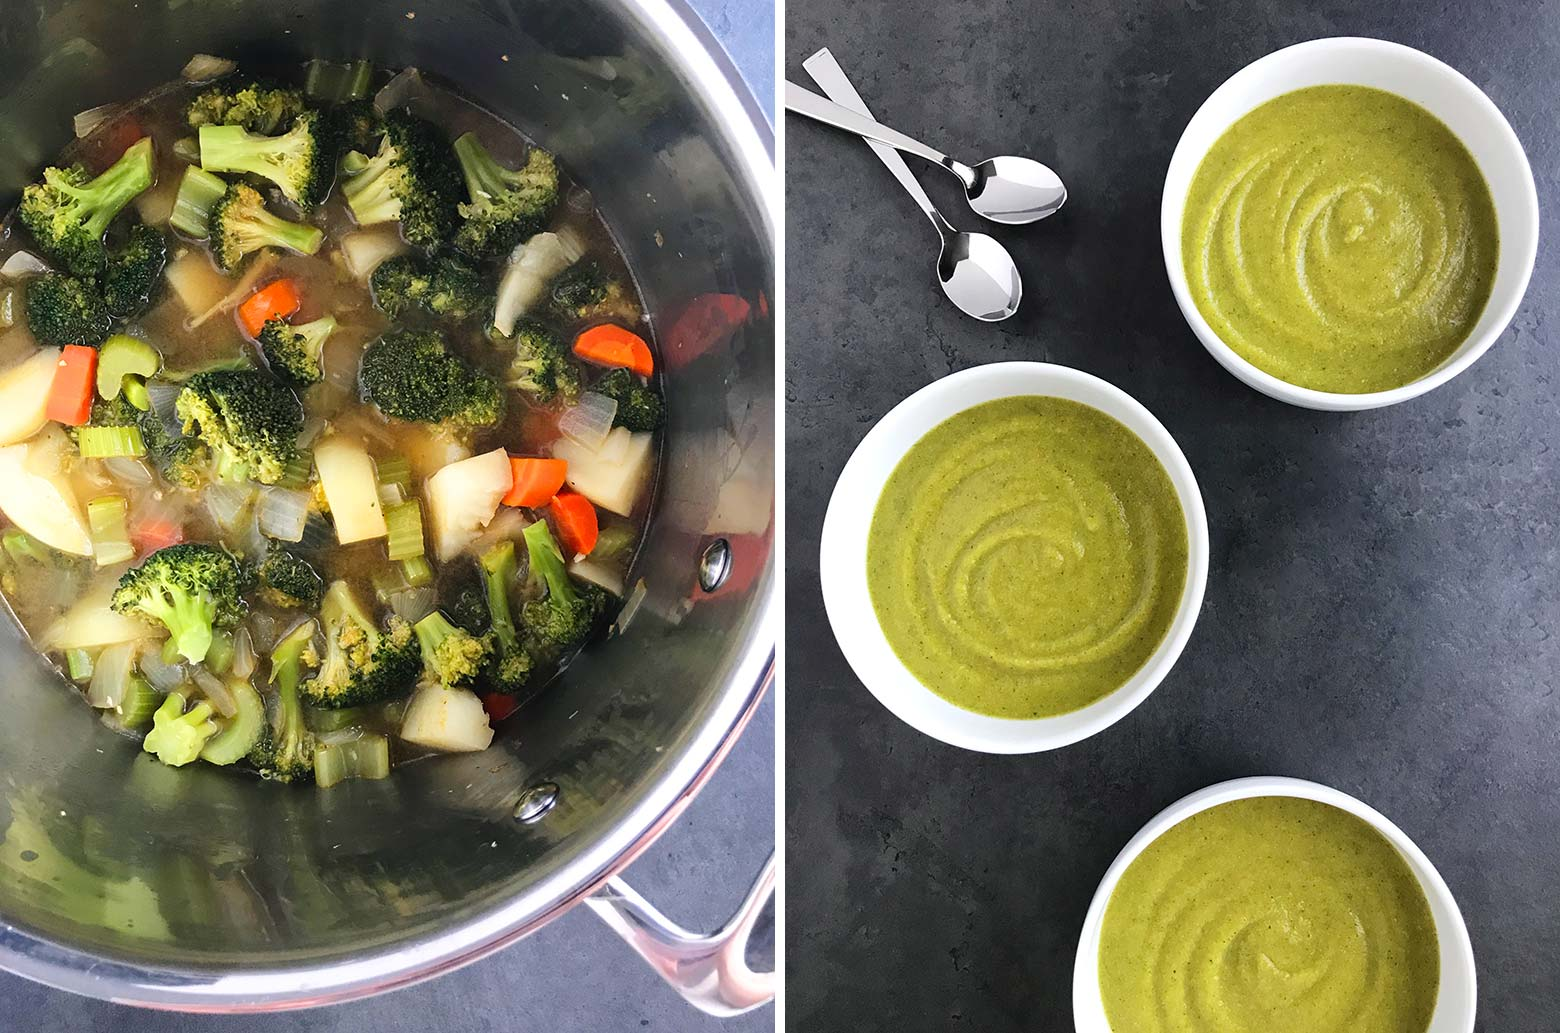 A pot of cooked healthy broccoli soup before being pureed and three bowls of pureed soup.